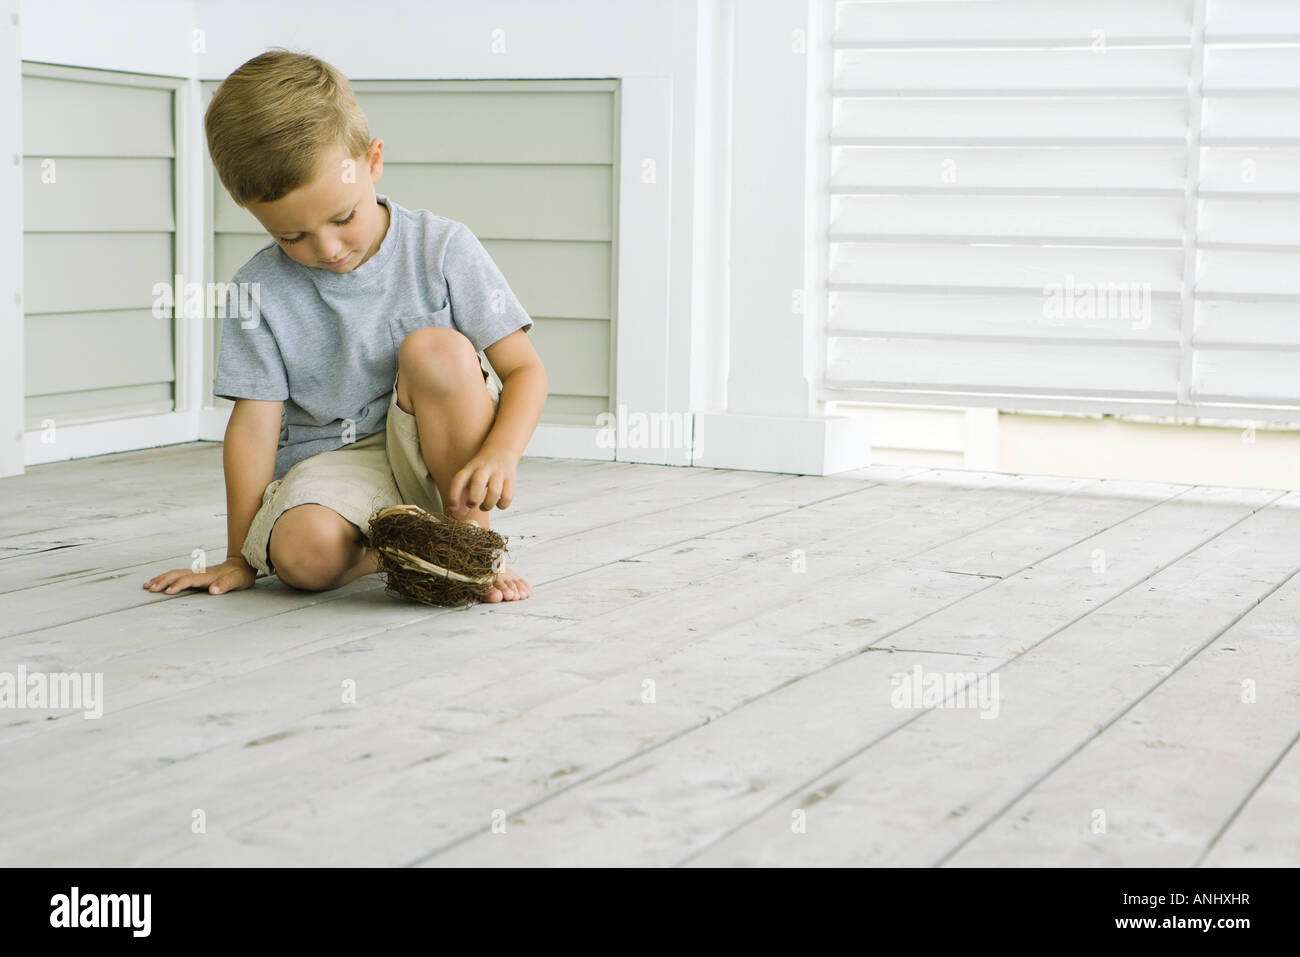 Boy crouching on the ground, touching bird's nest, looking down - Stock Image